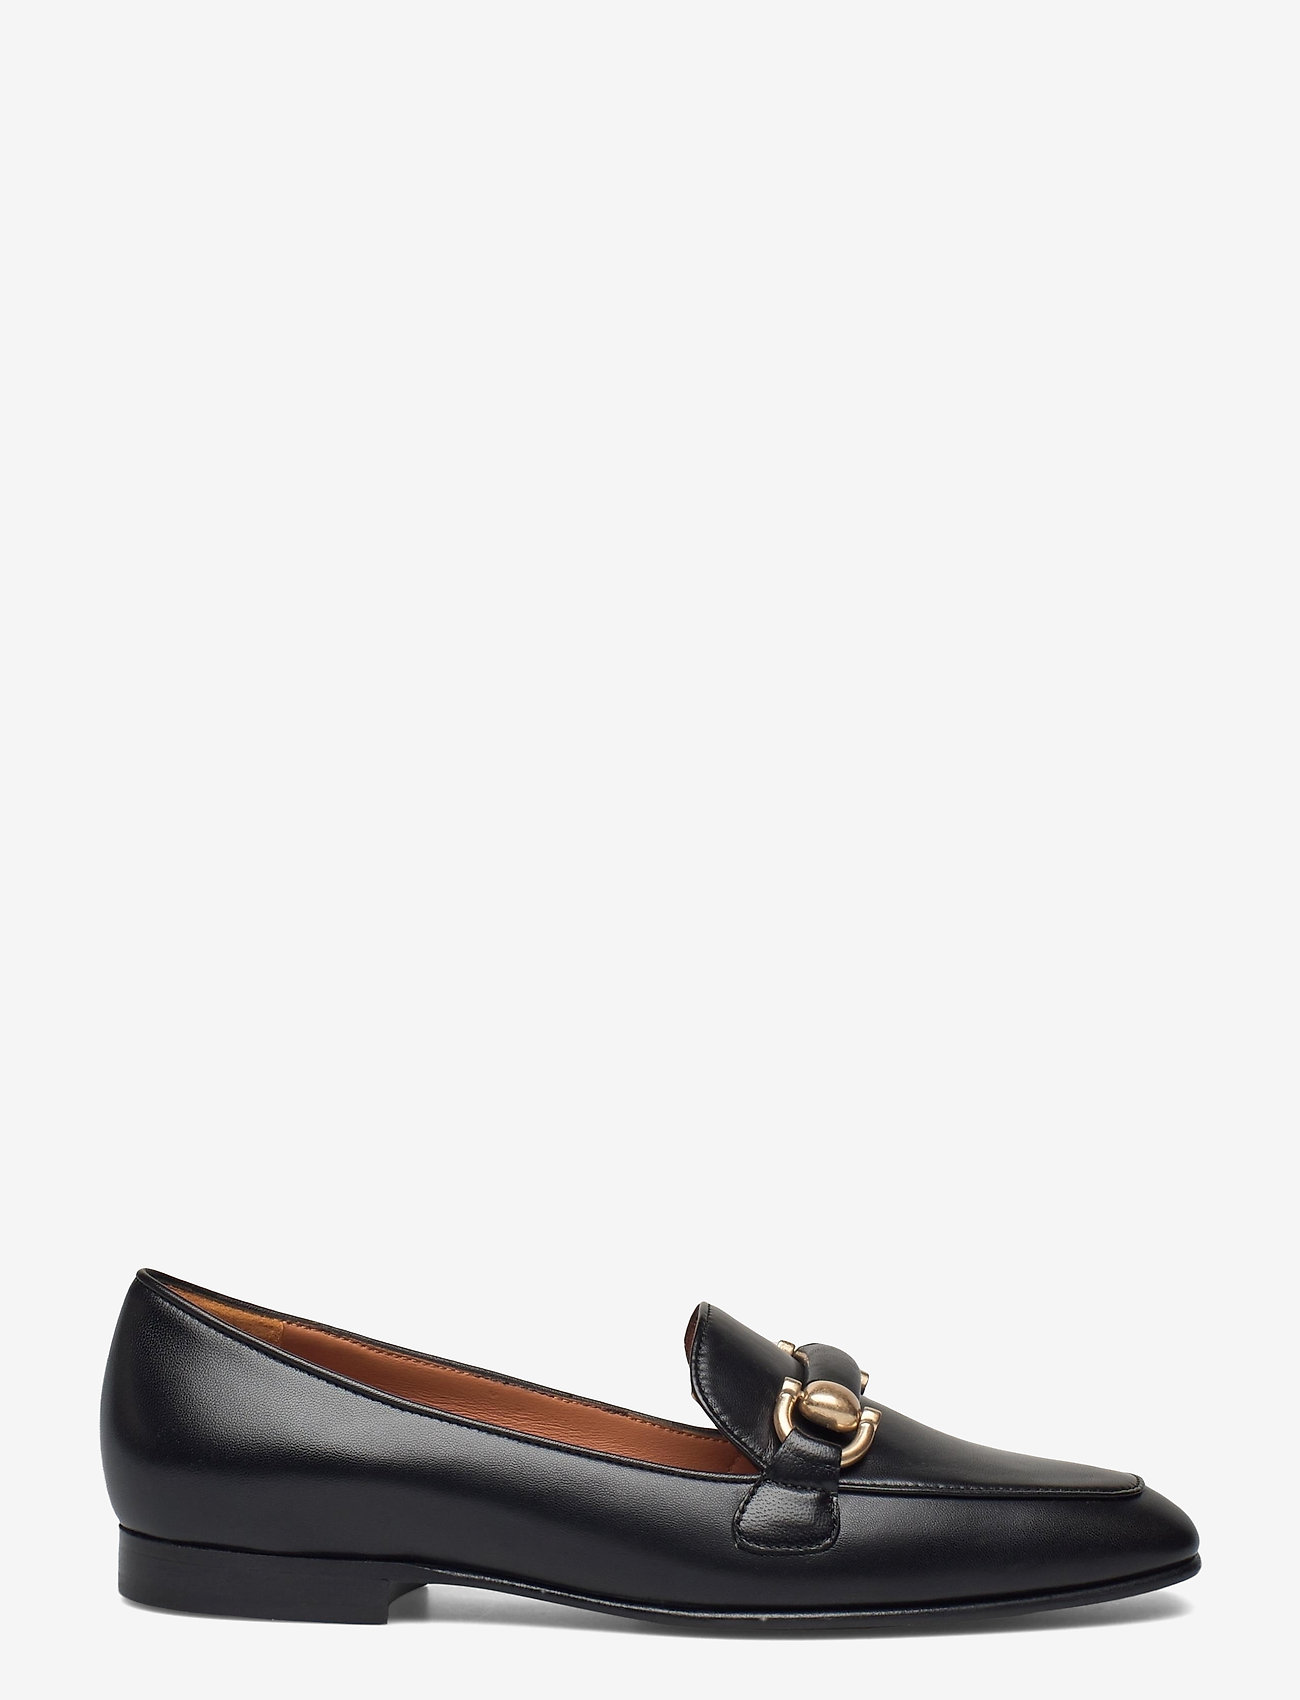 NOTABENE - Libby - instappers - black leather - 0